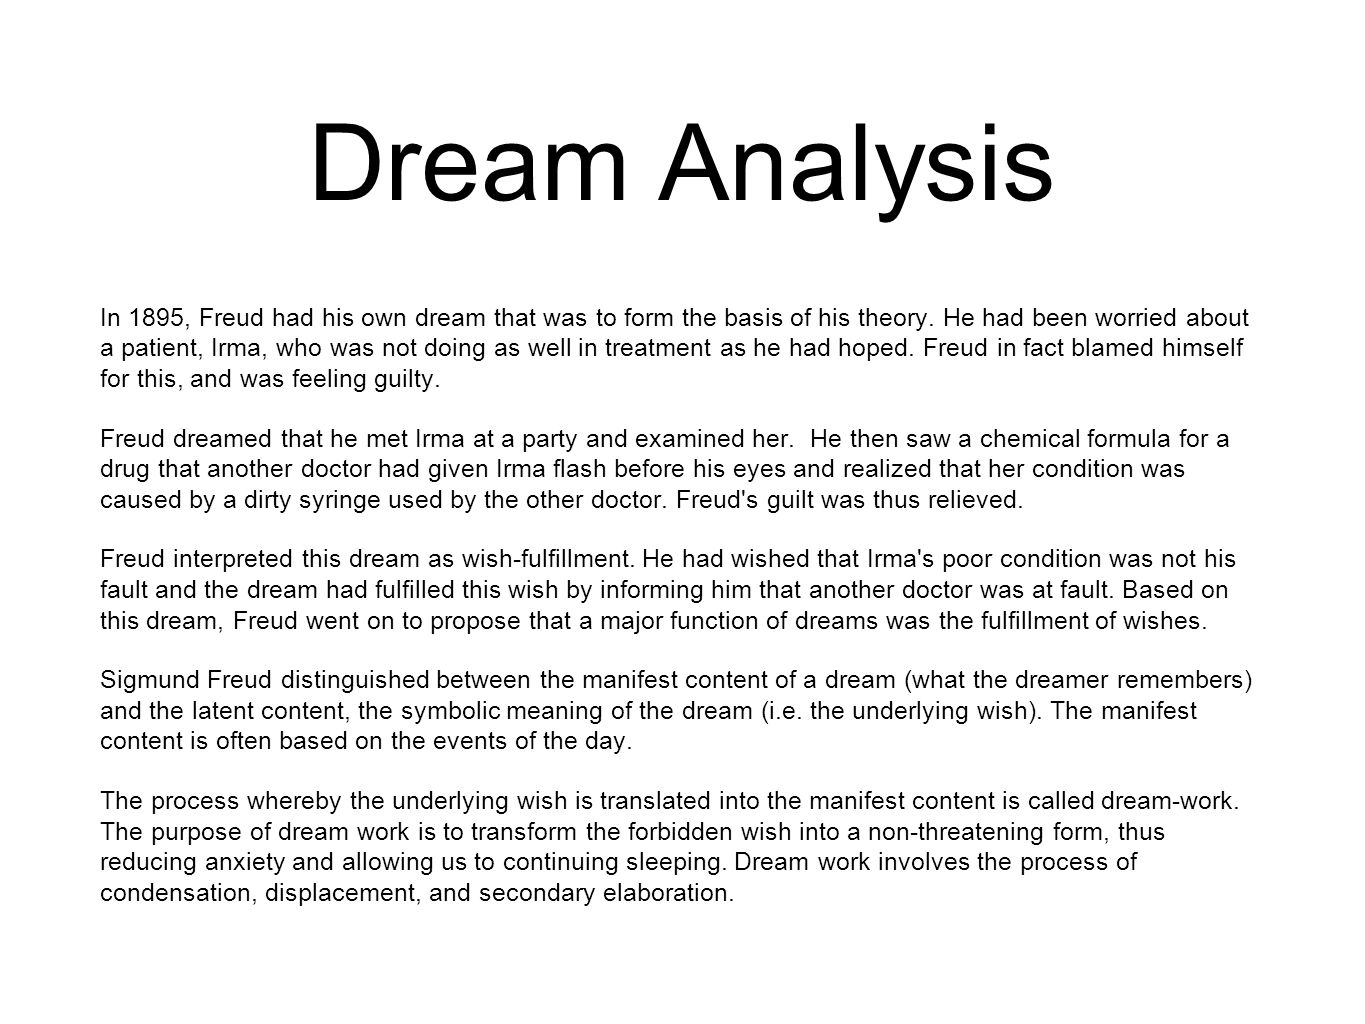 016 Research Paper Dreamanalysis Psychology Topics On Rare Dreams Papers Articles Full